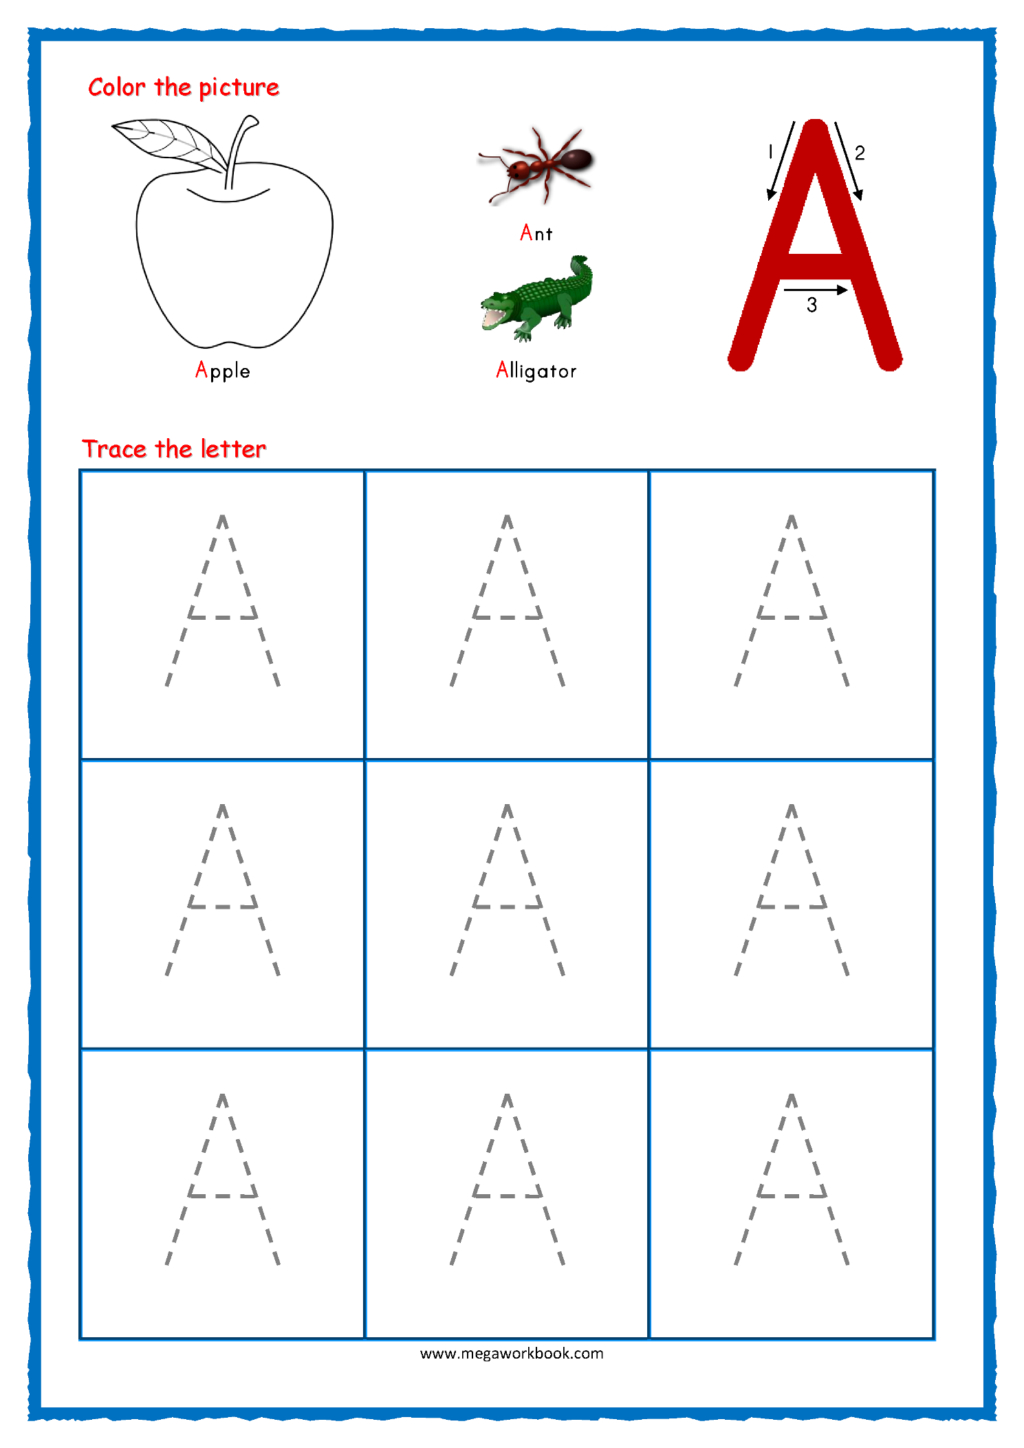 Worksheet ~ Capital Letter Tracing With Crayons 01 Alphabet pertaining to Alphabet Tracing Letters For Preschoolers